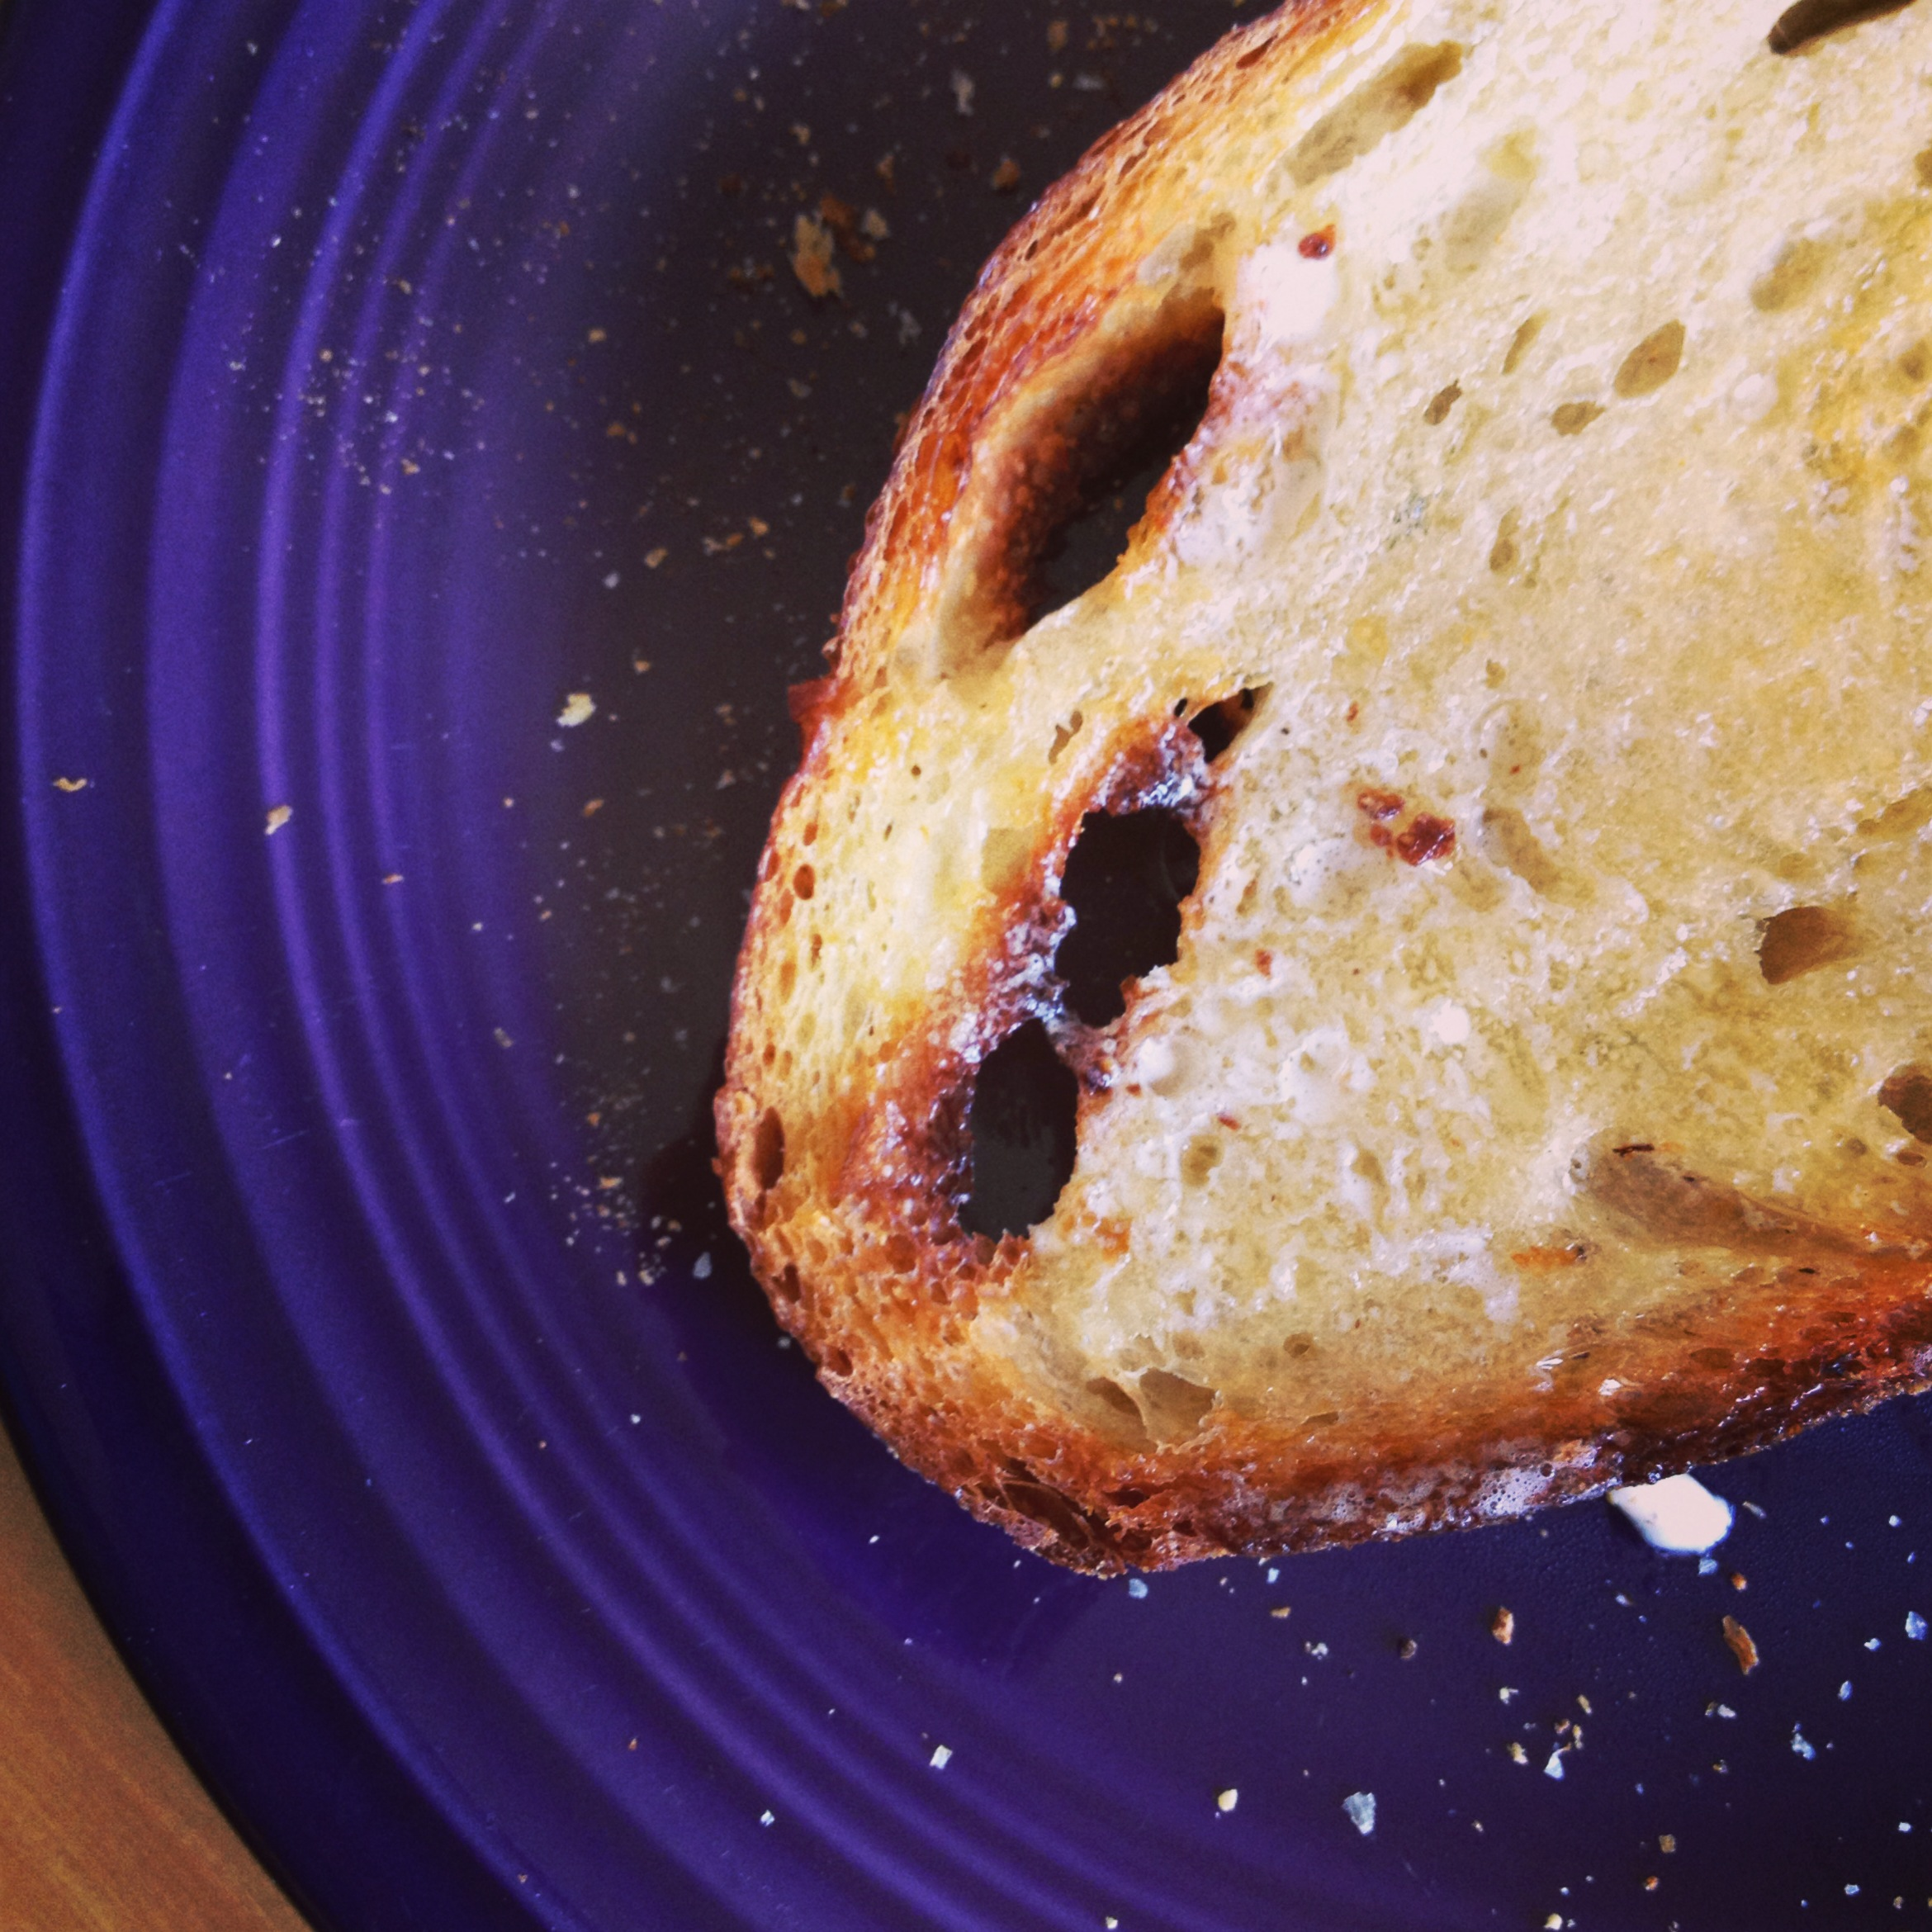 Sourdough-Bread-Homemade-No-Knead-Butter-Marissa-Huber